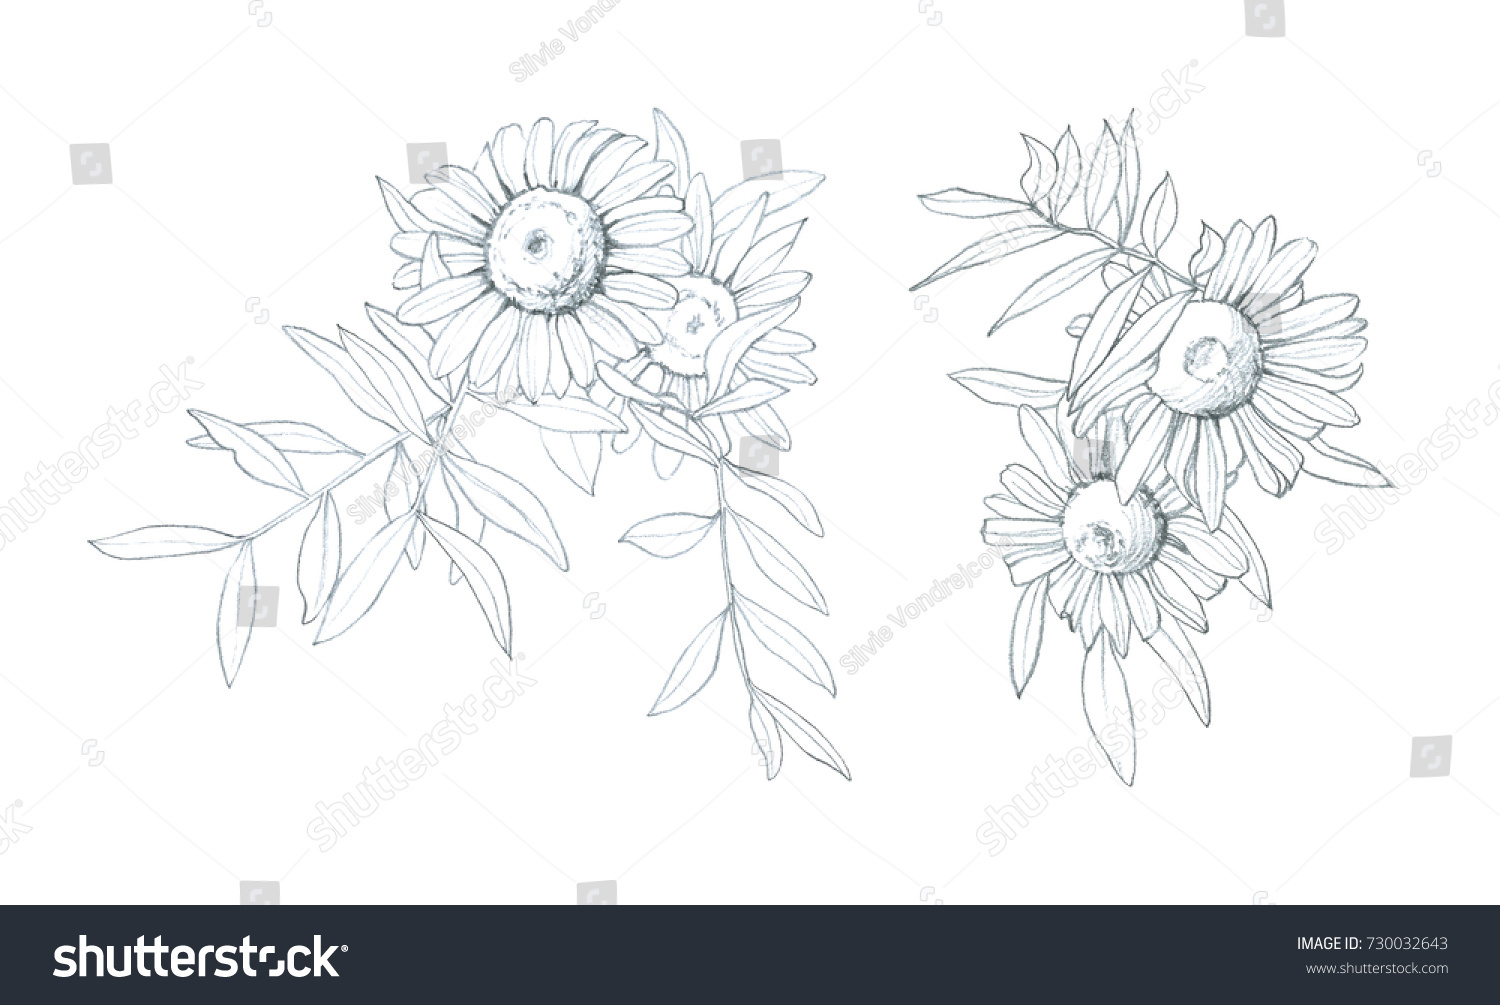 Daisy flower hand pencil drawing stock illustration 730032643 daisy flower hand pencil drawing izmirmasajfo